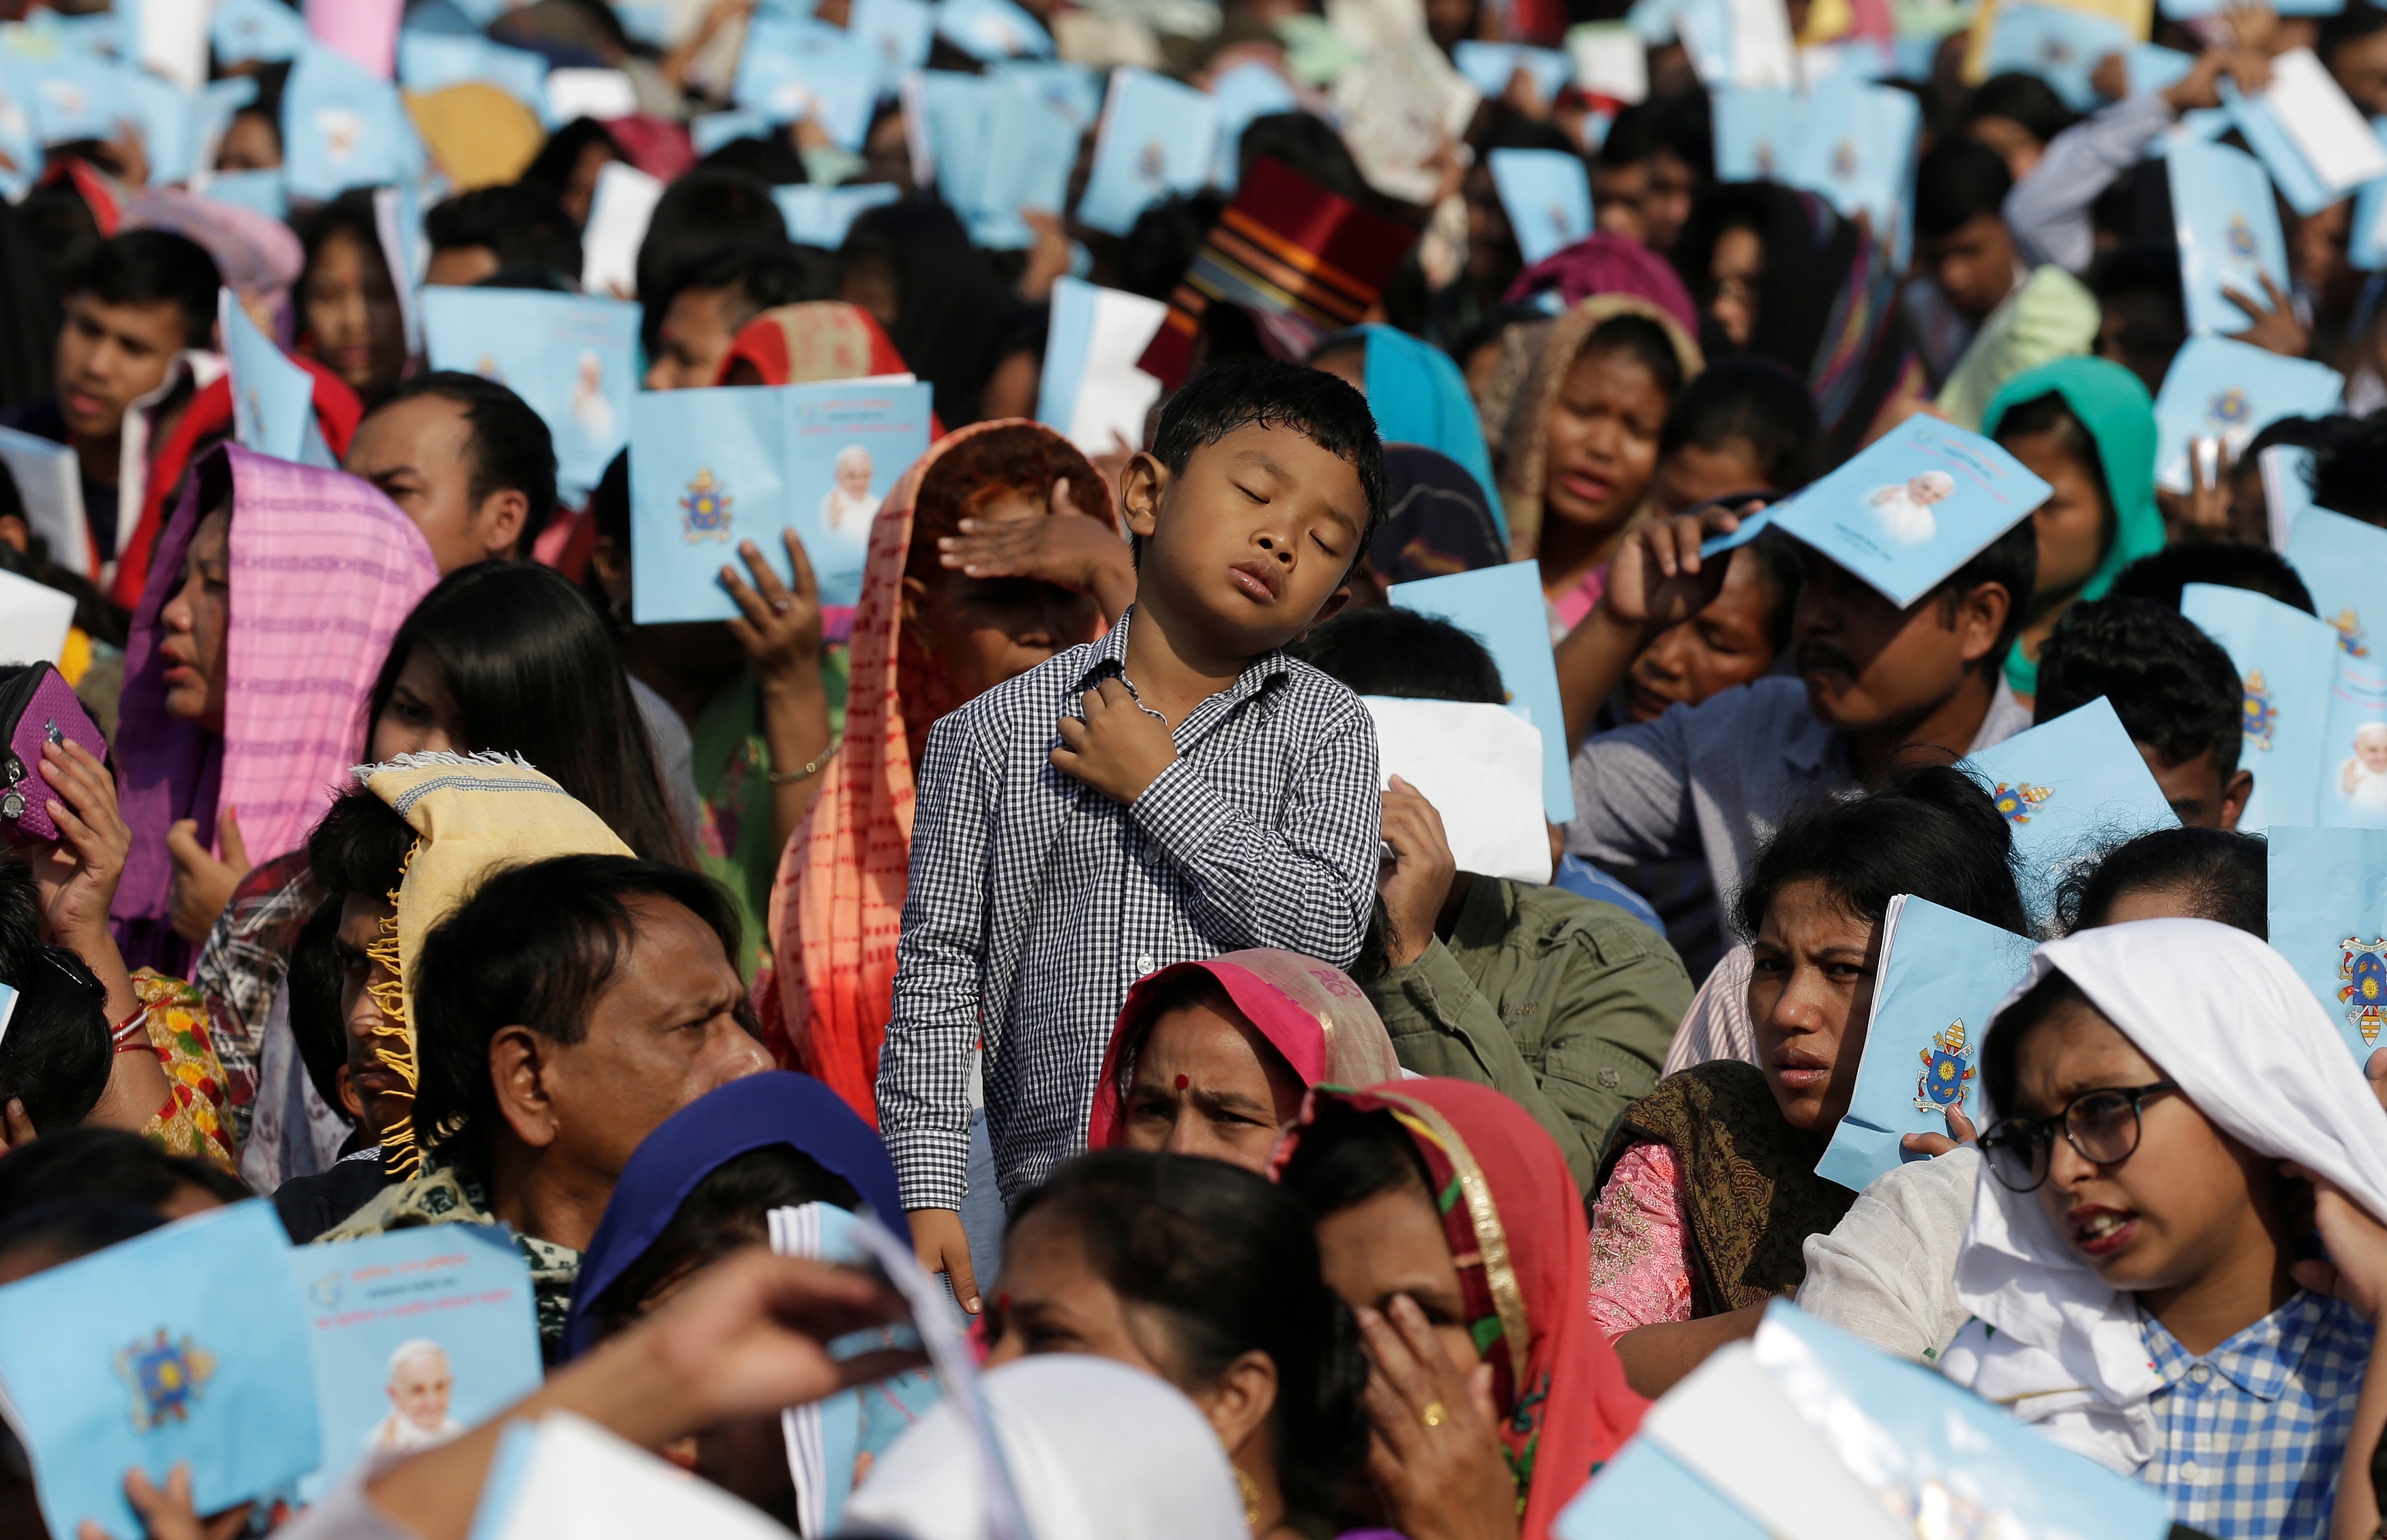 Believers attend a mass by Pope Francis in Dhaka, Bangladesh, Dec. 1, 2017.